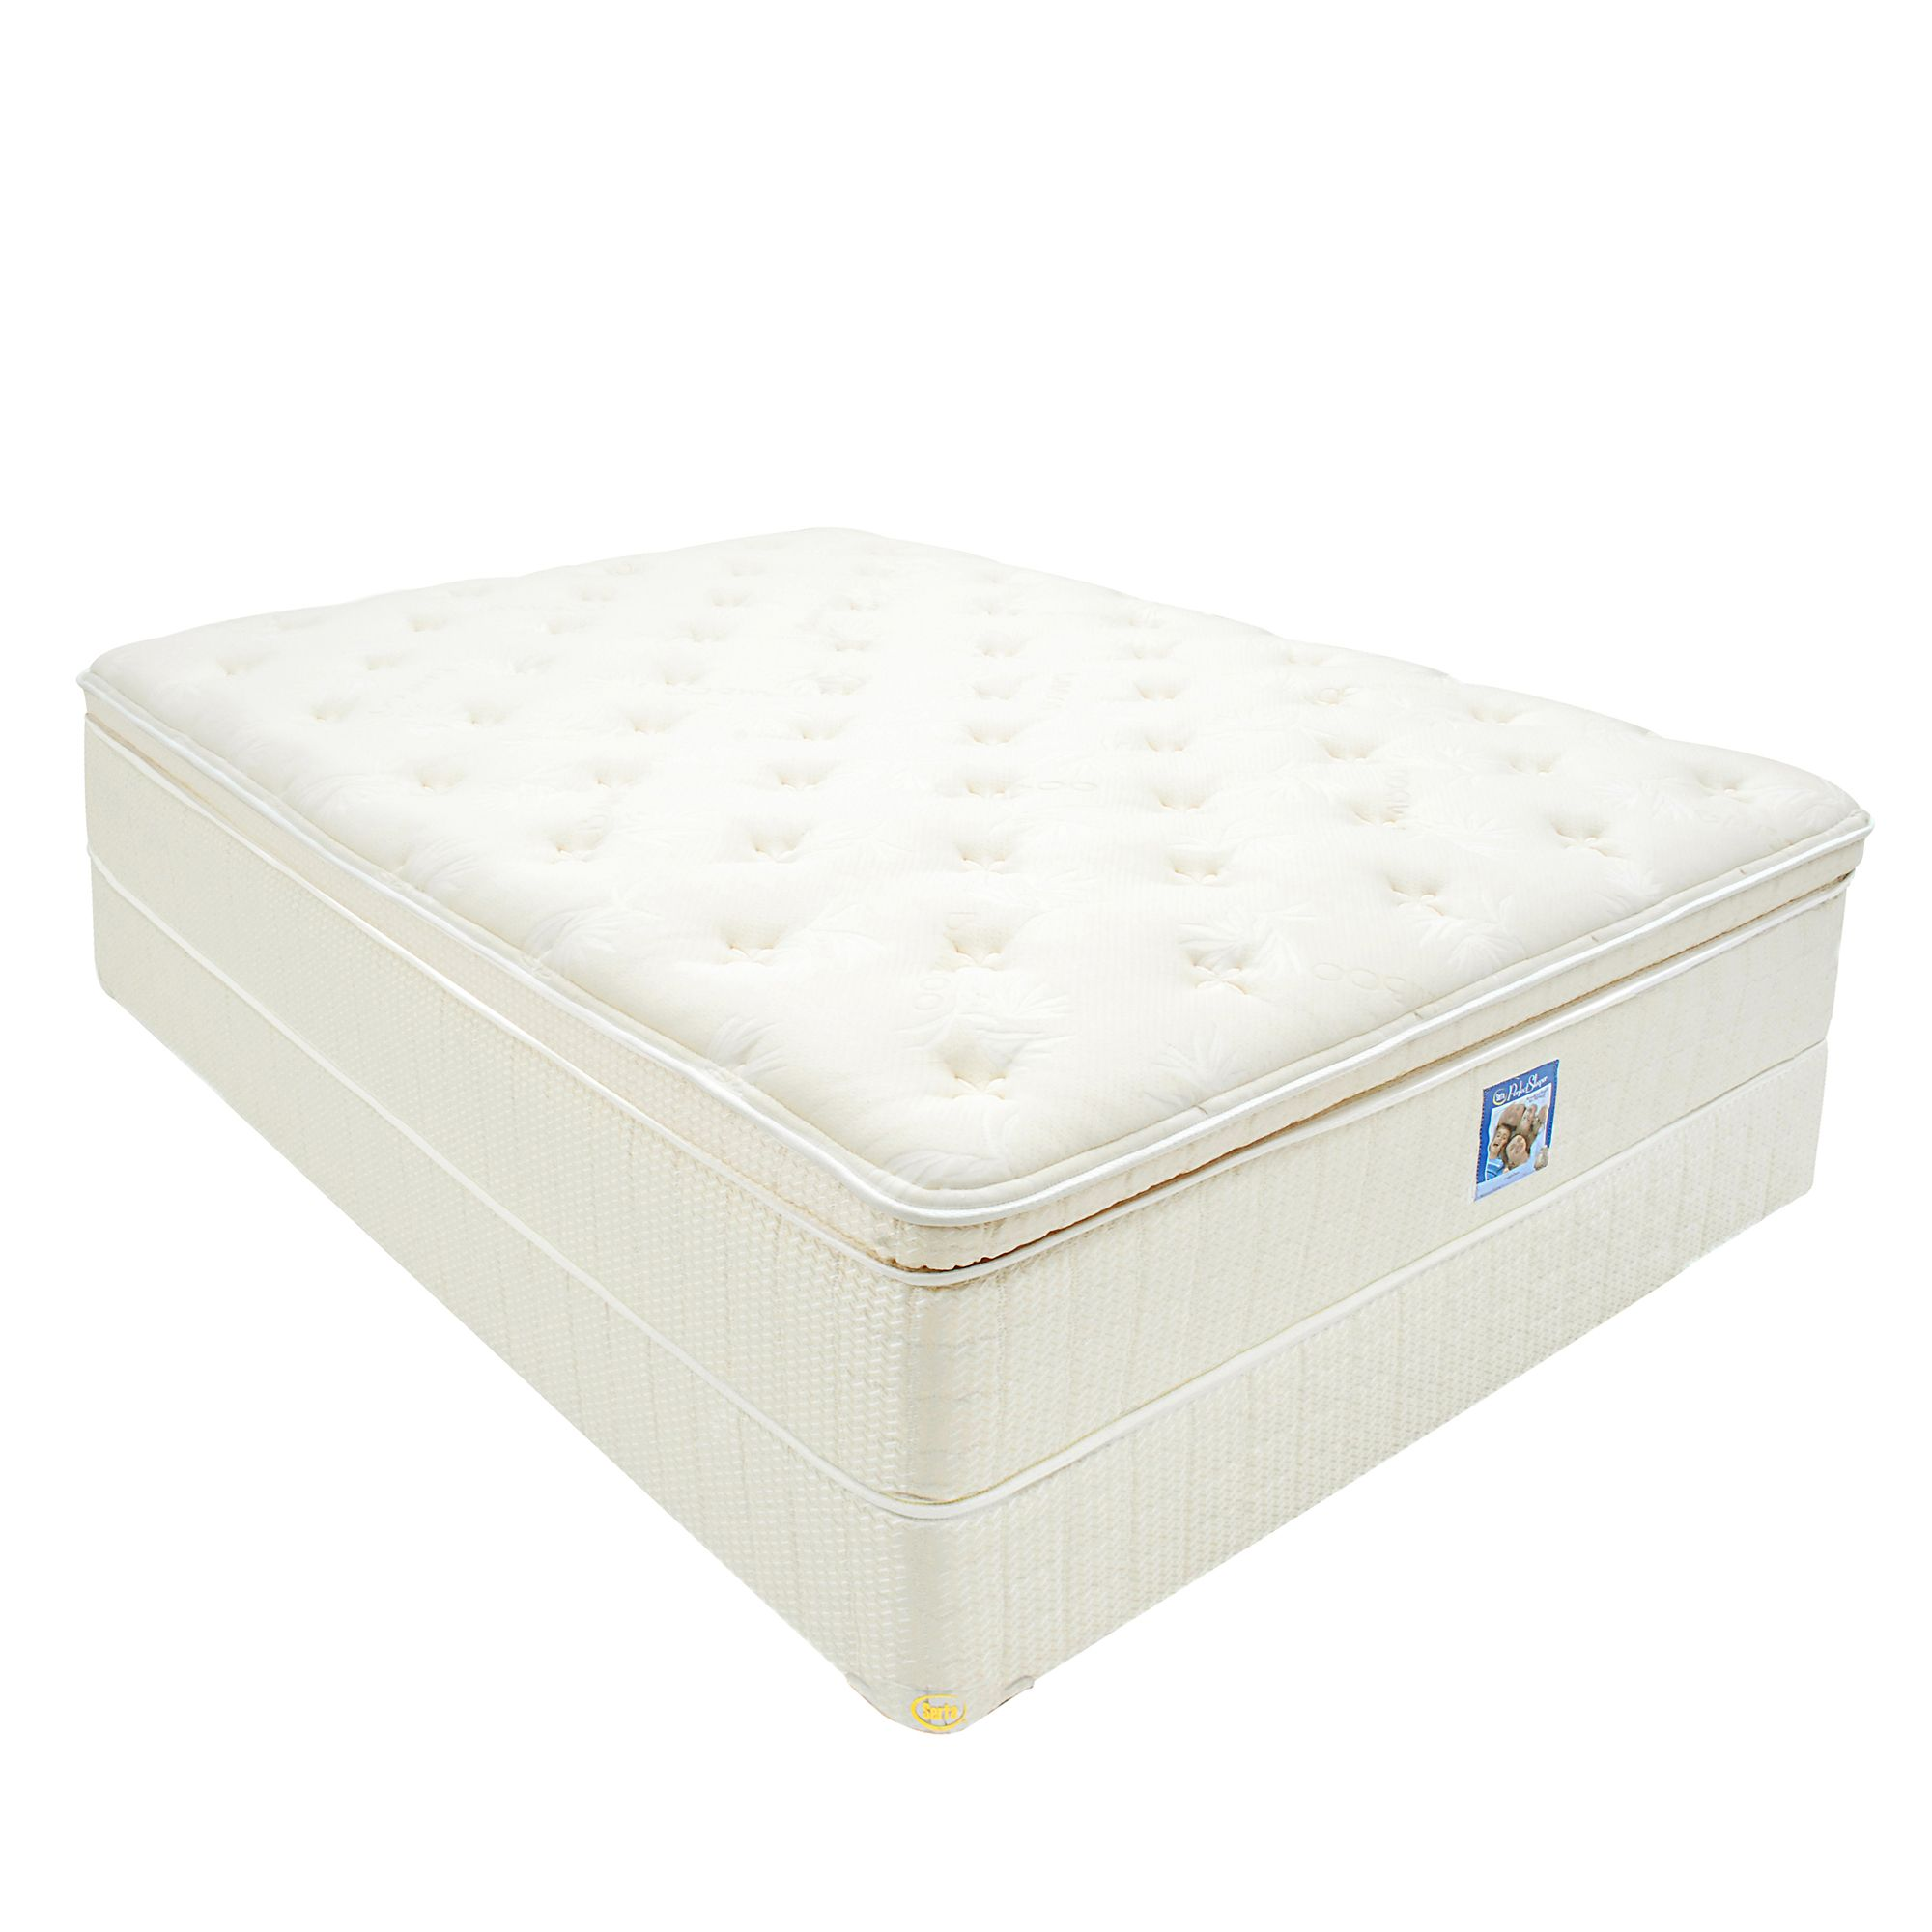 Perfect-Sleeper-Reese-Limited-Firm-II-EuroTop-CA-King-Mattress